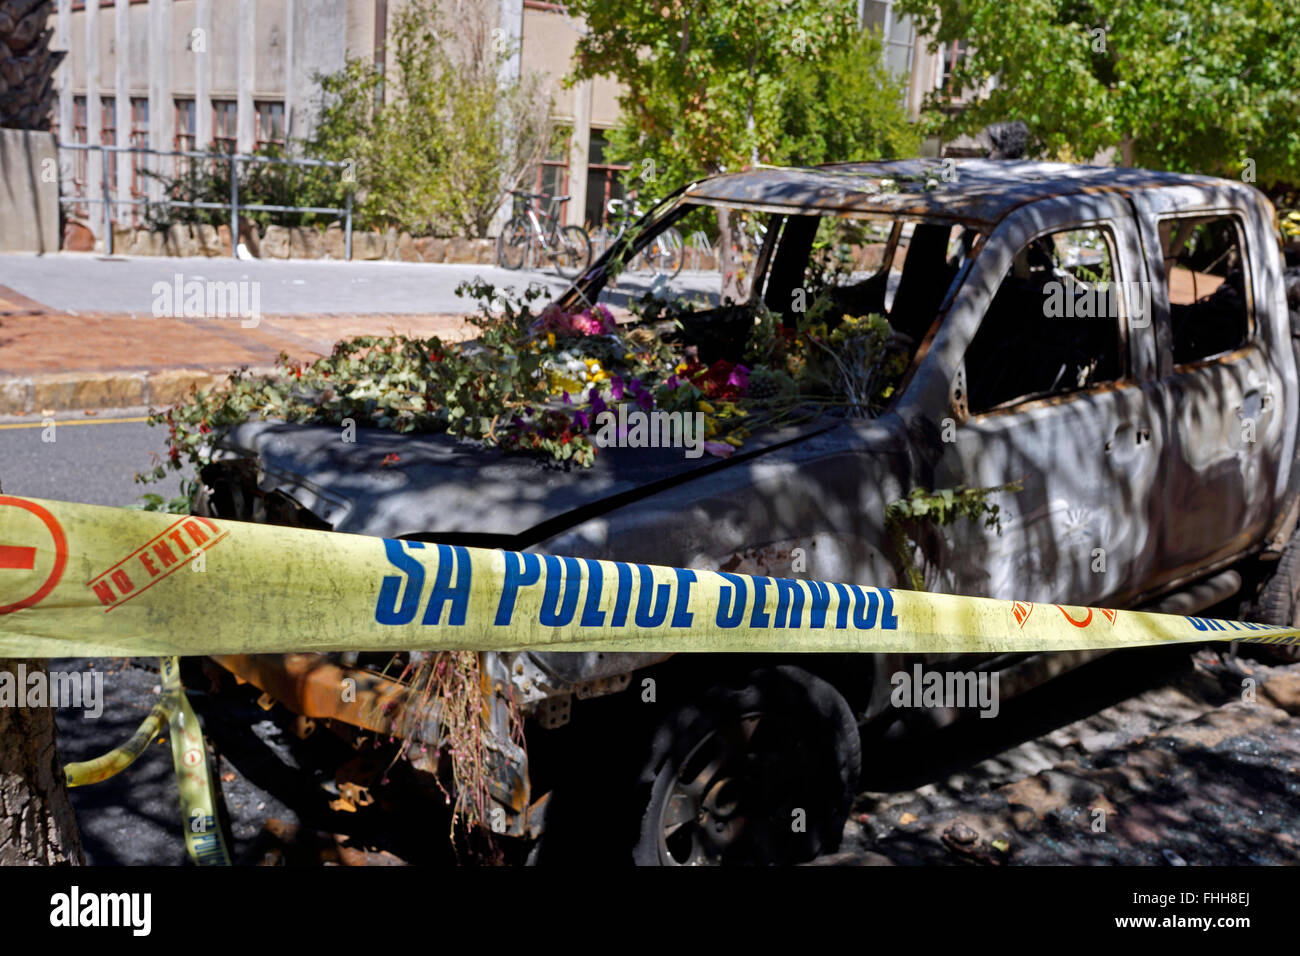 Cape Town, South Africa. 25th  February 2016. A burnt out UCT vehicle is adorned with fresh flowers. The vehicle - Stock Image